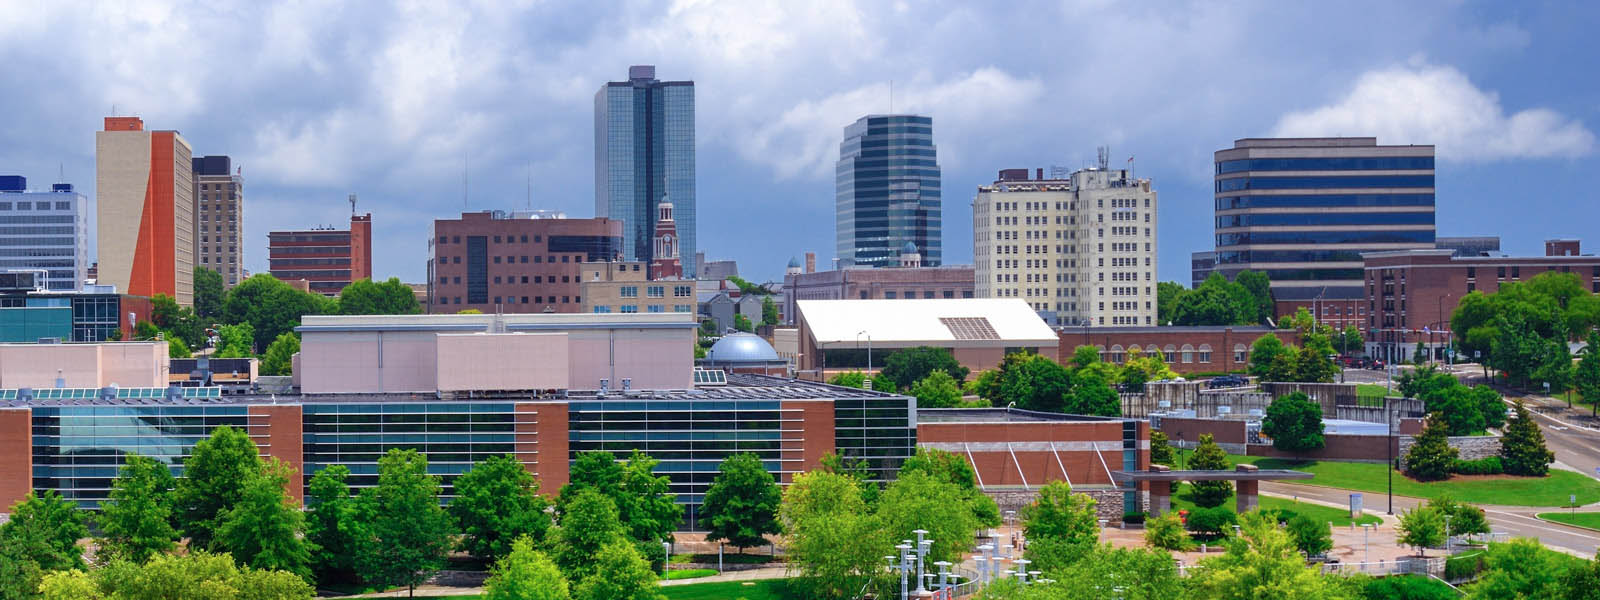 The skyline of downtown Knoxville, Tennessee